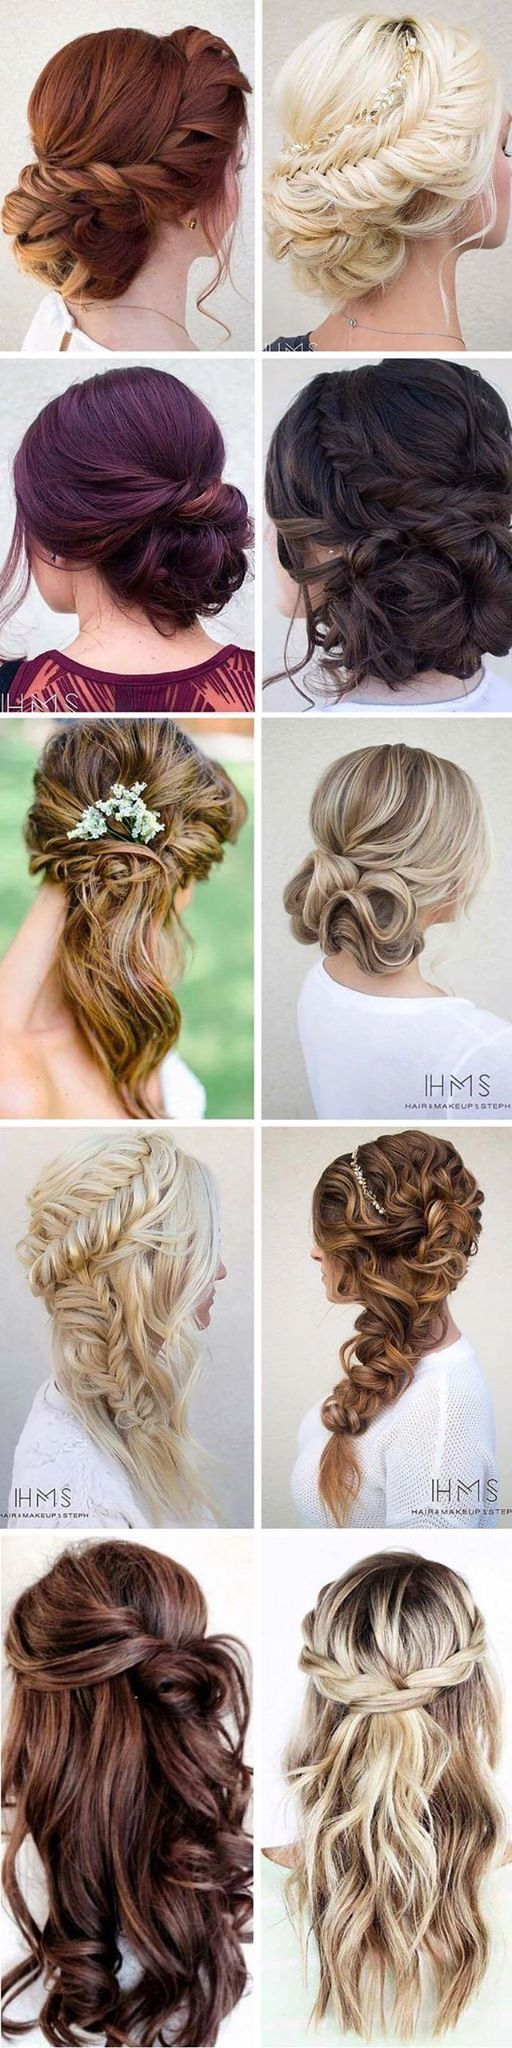 best hair images on pinterest braids hairdos and hair dos